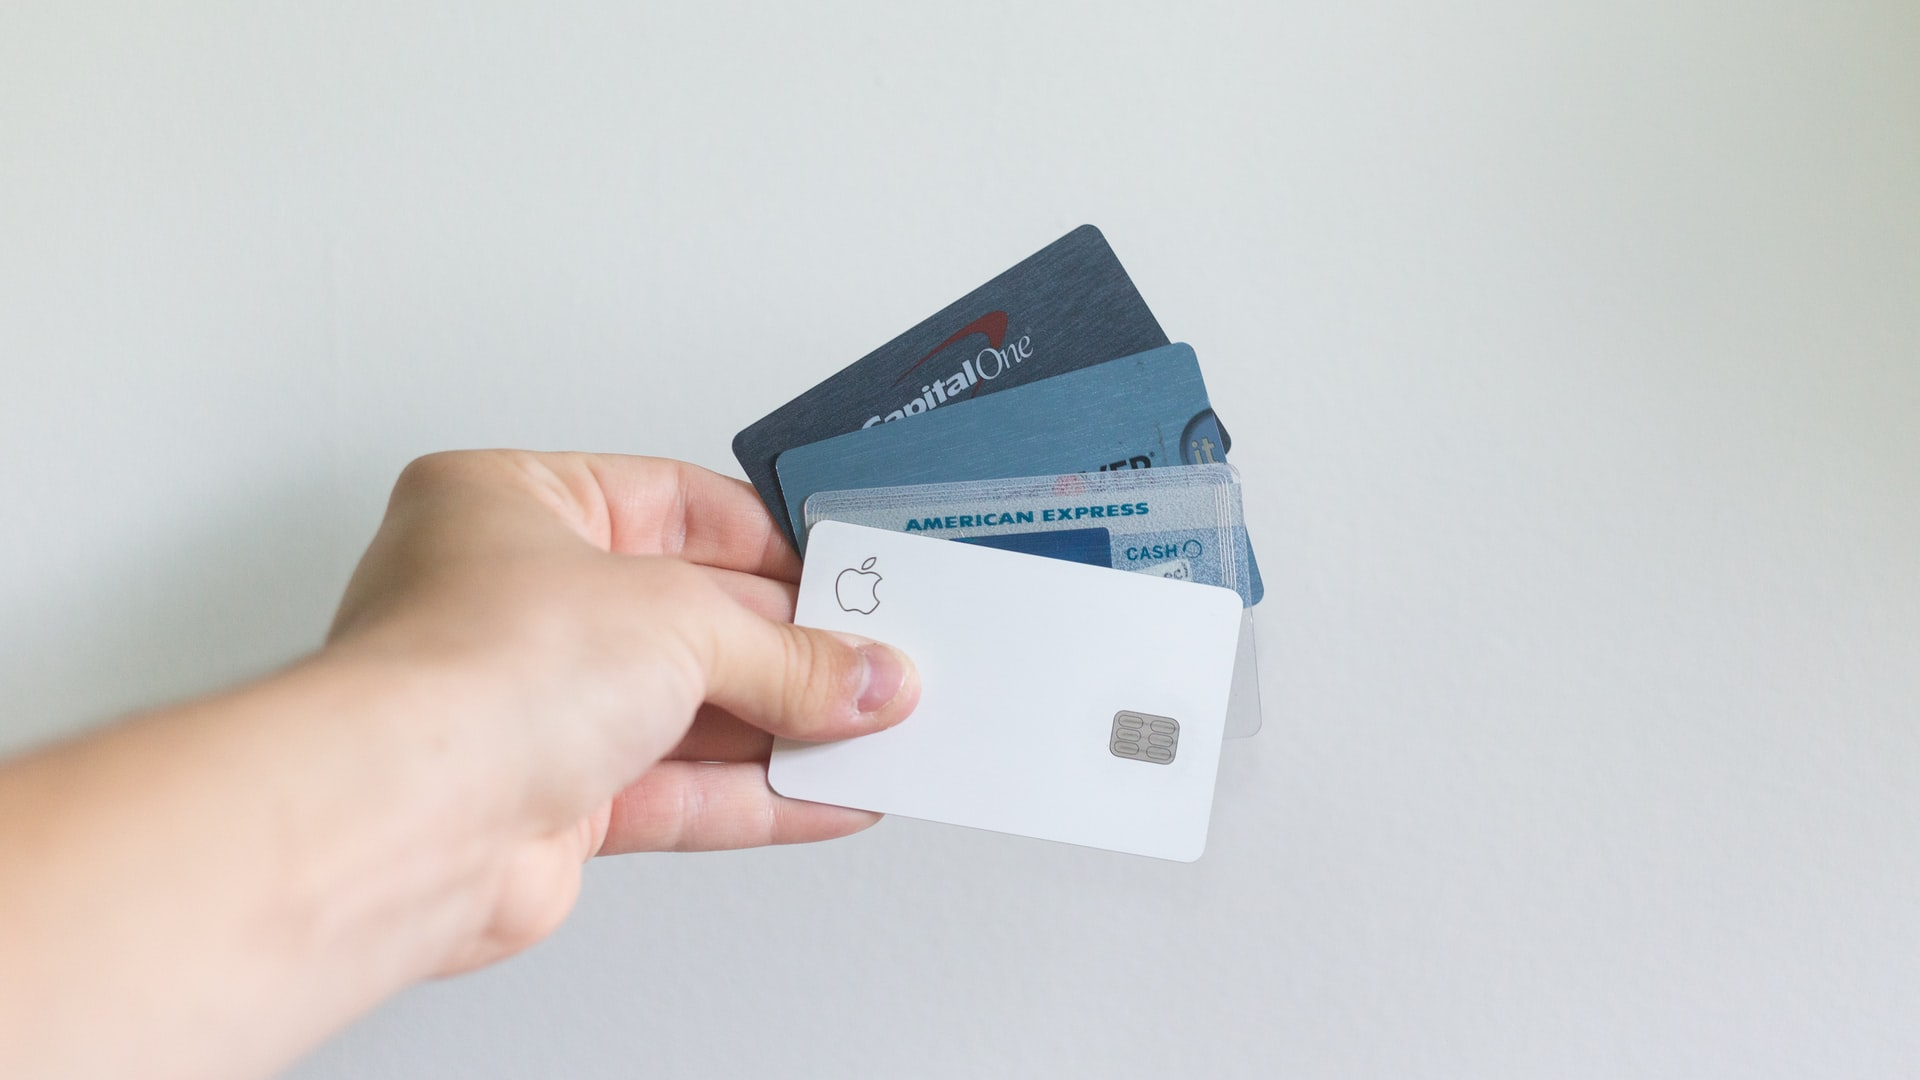 Vanquis: 3 Common Myths About Credit Cards, Busted